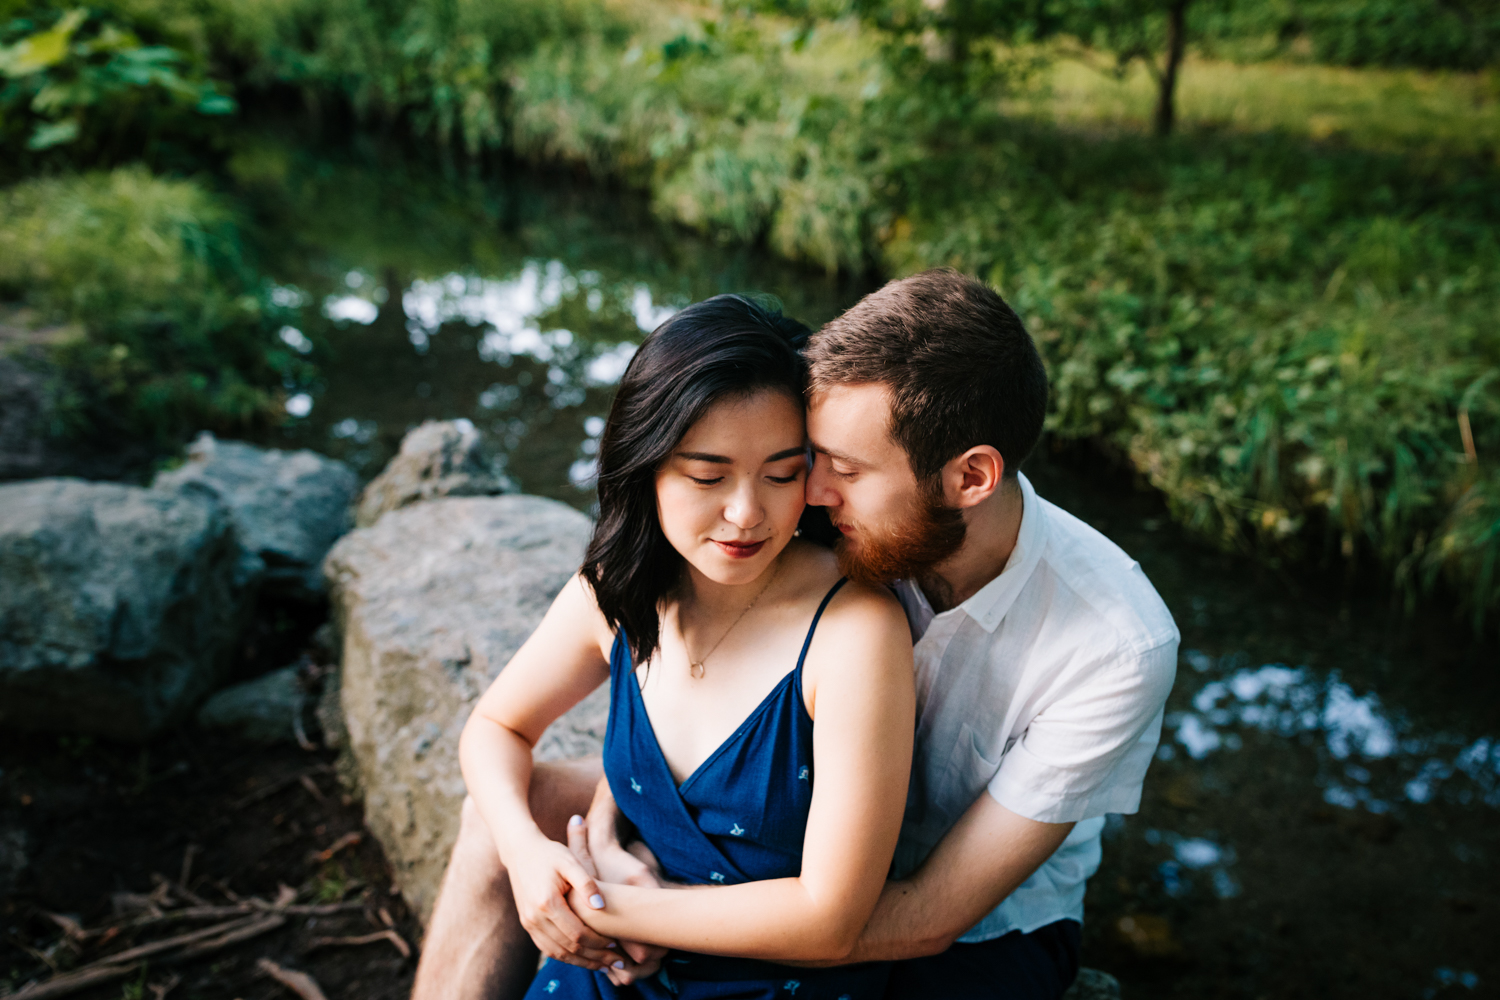 natural-engagement-photographer-arnold-arboretum-harvard-fun-boston-adventurous-harvard-massachusetts-andrea-van-orsouw-photography.jpg